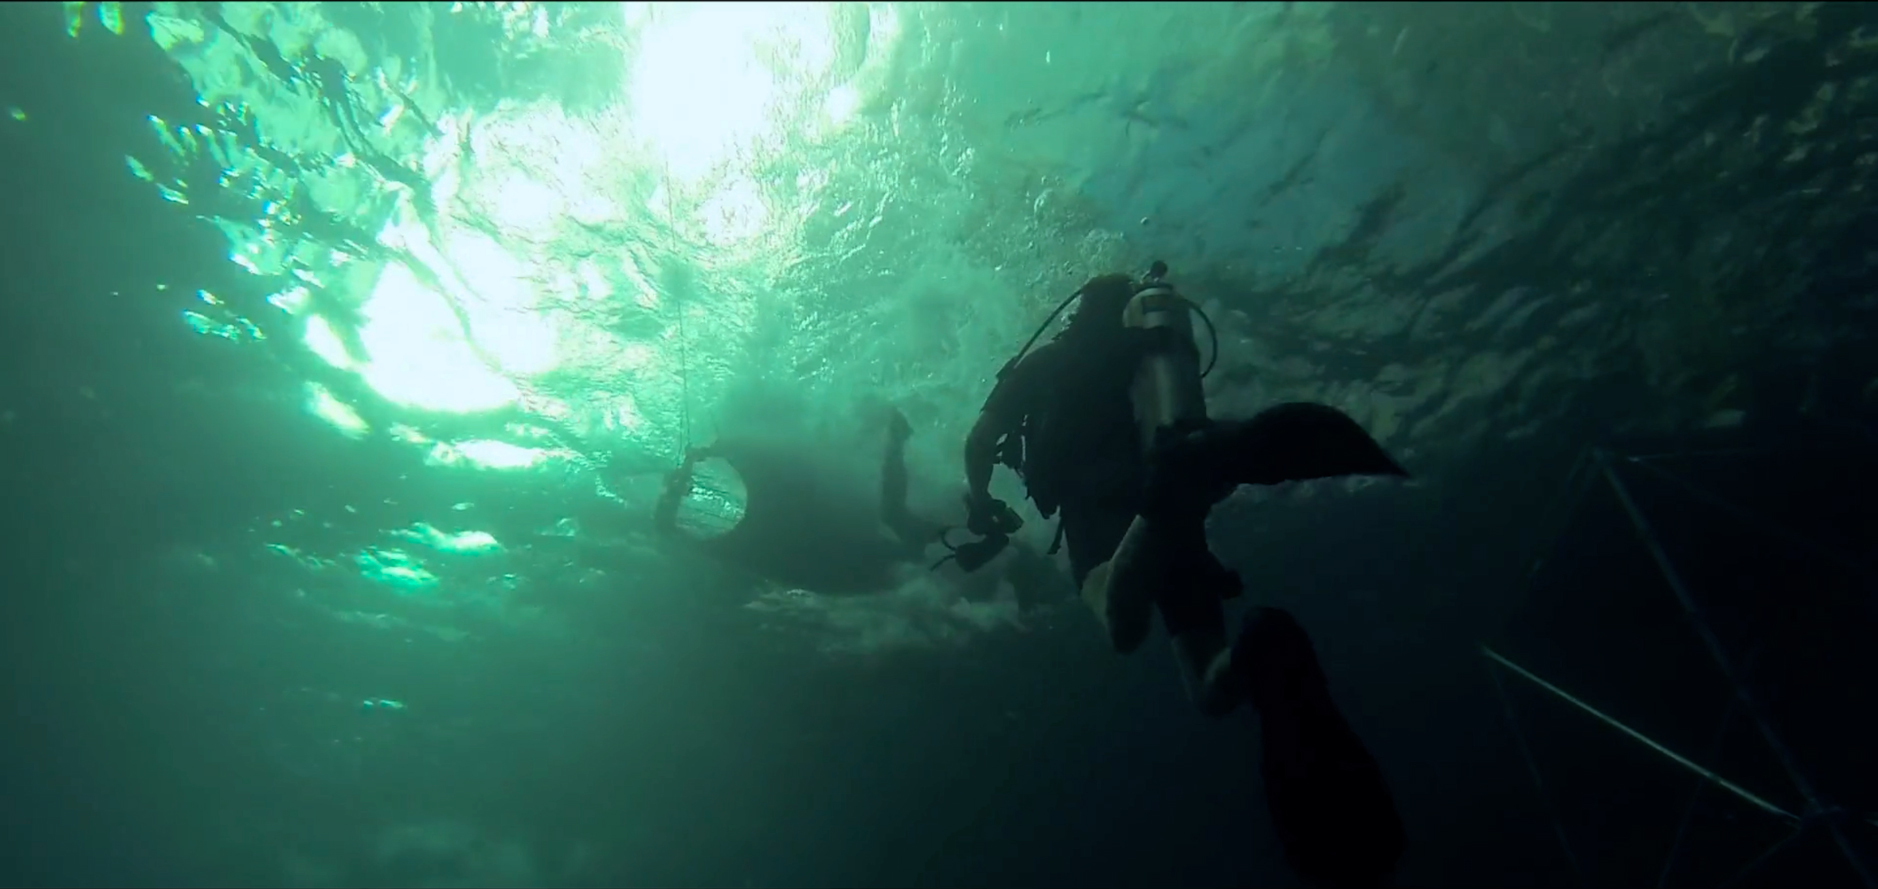 MG-Action, Martin Goeres, Safety Diving, Vodaphone